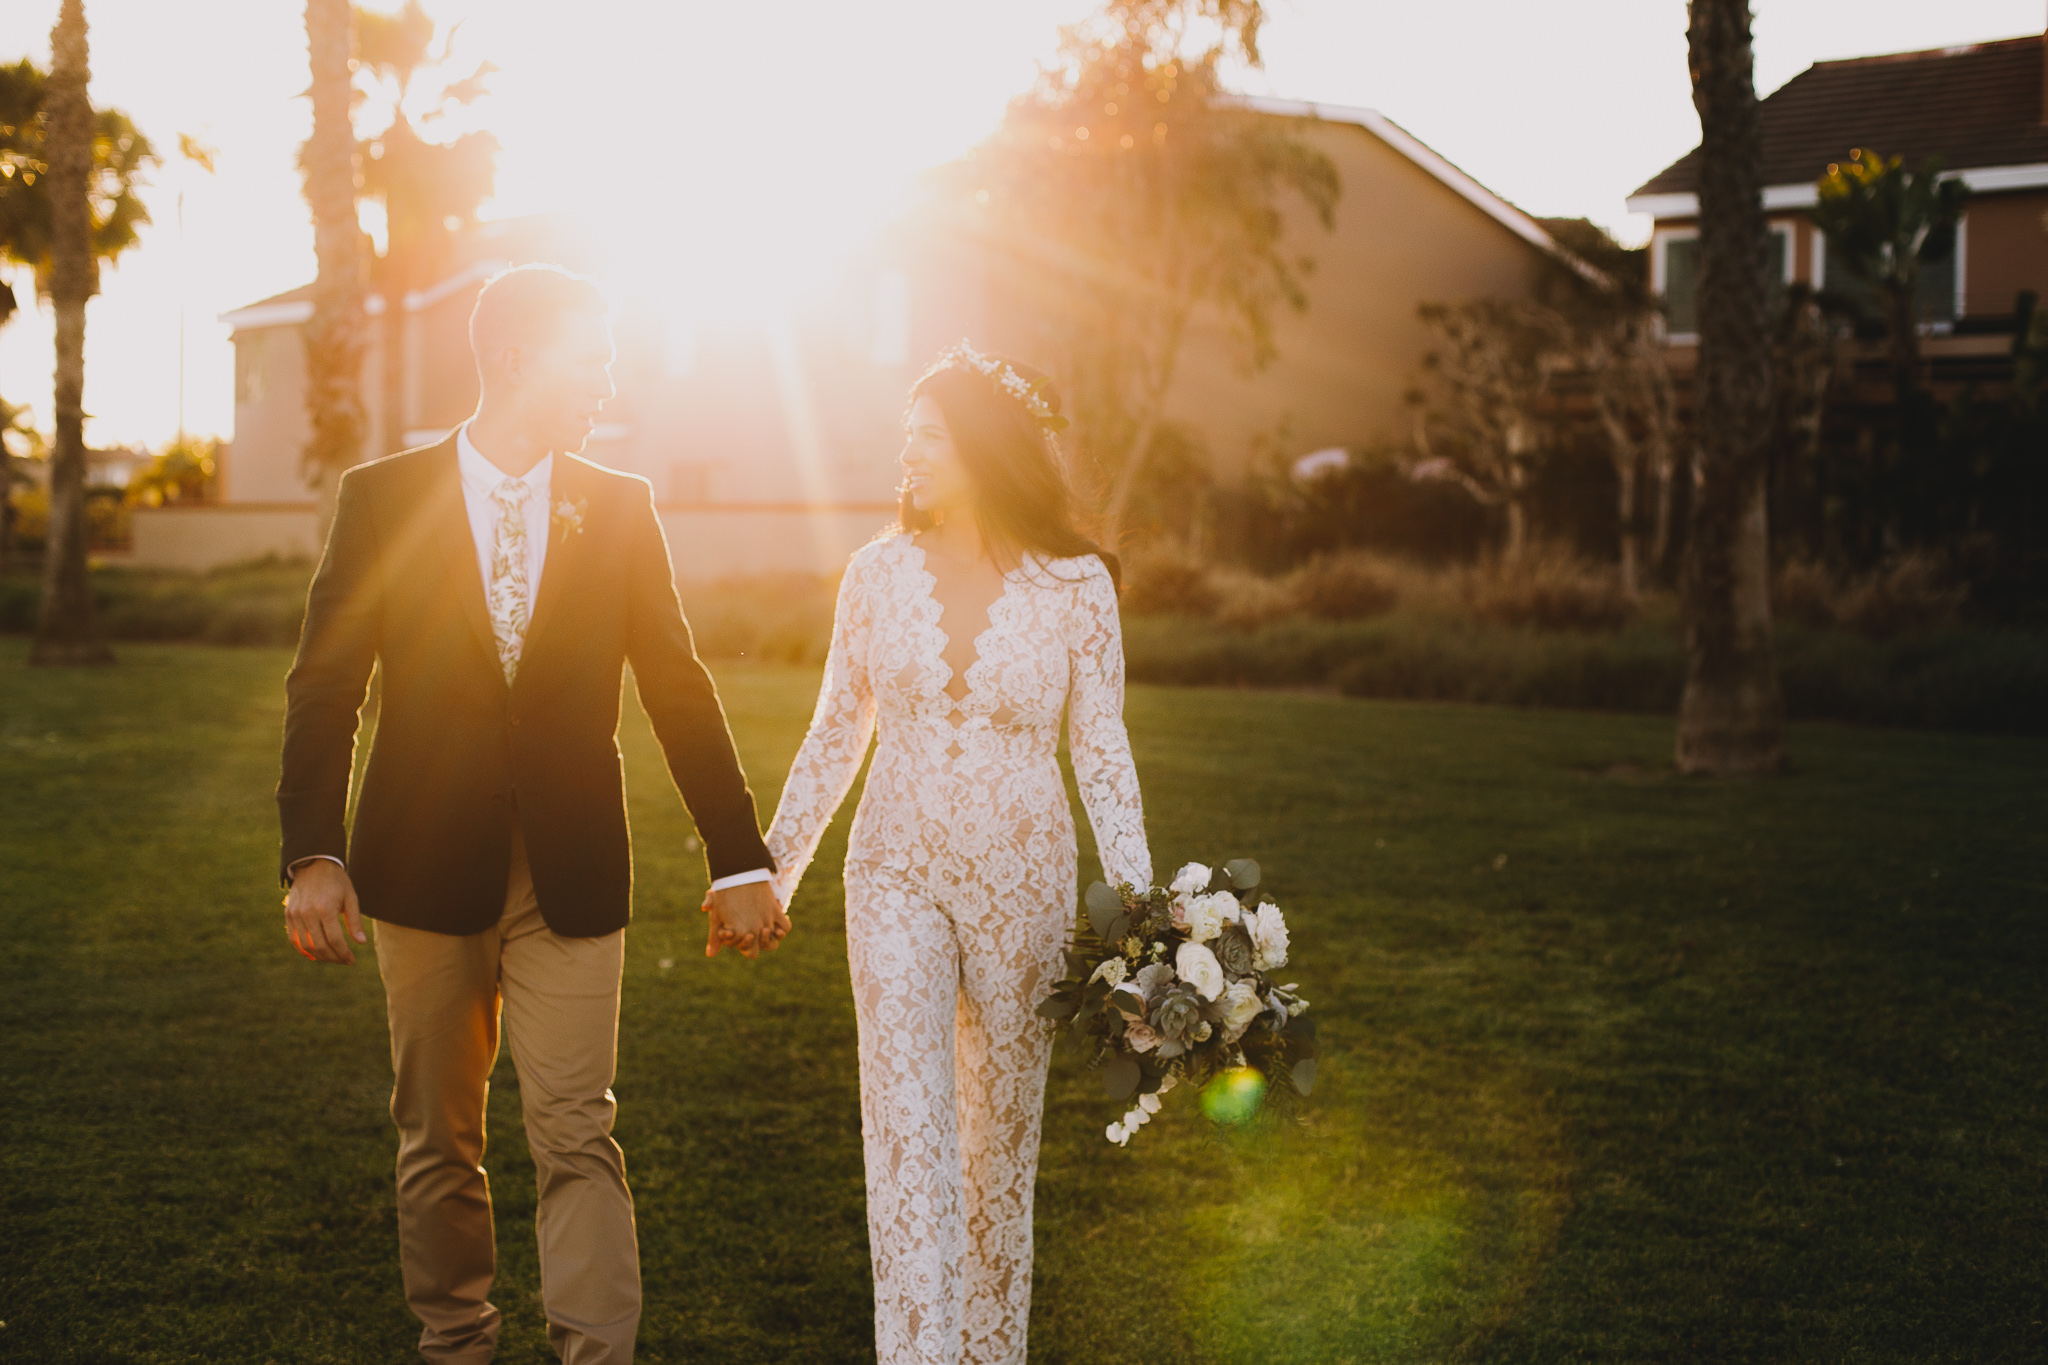 Archer Inspired Photography Lauren and Derek Long Beach Orange County Wedding Elopement-199.jpg